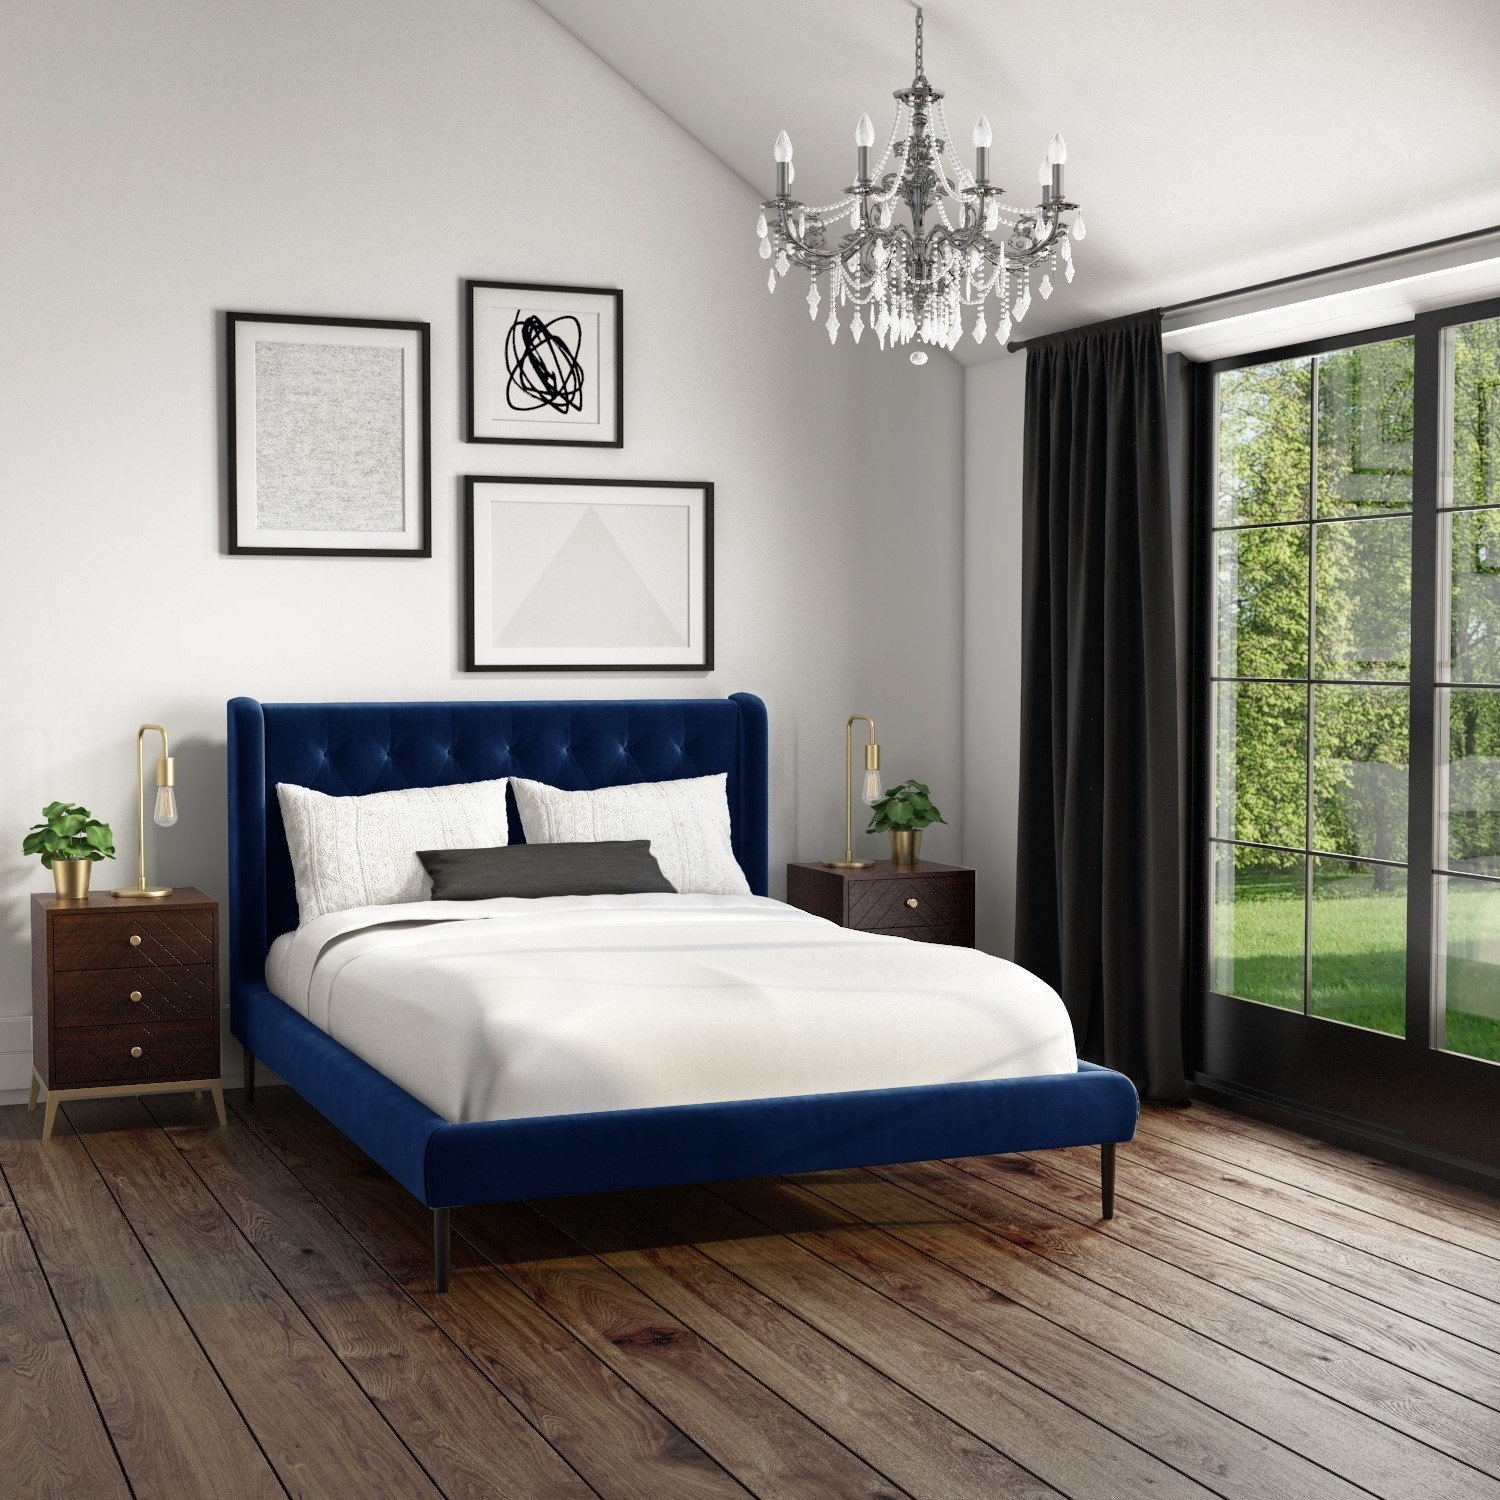 Amara Double Bed Frame In Navy Blue Velvet With Quilted Headboard Furniture123